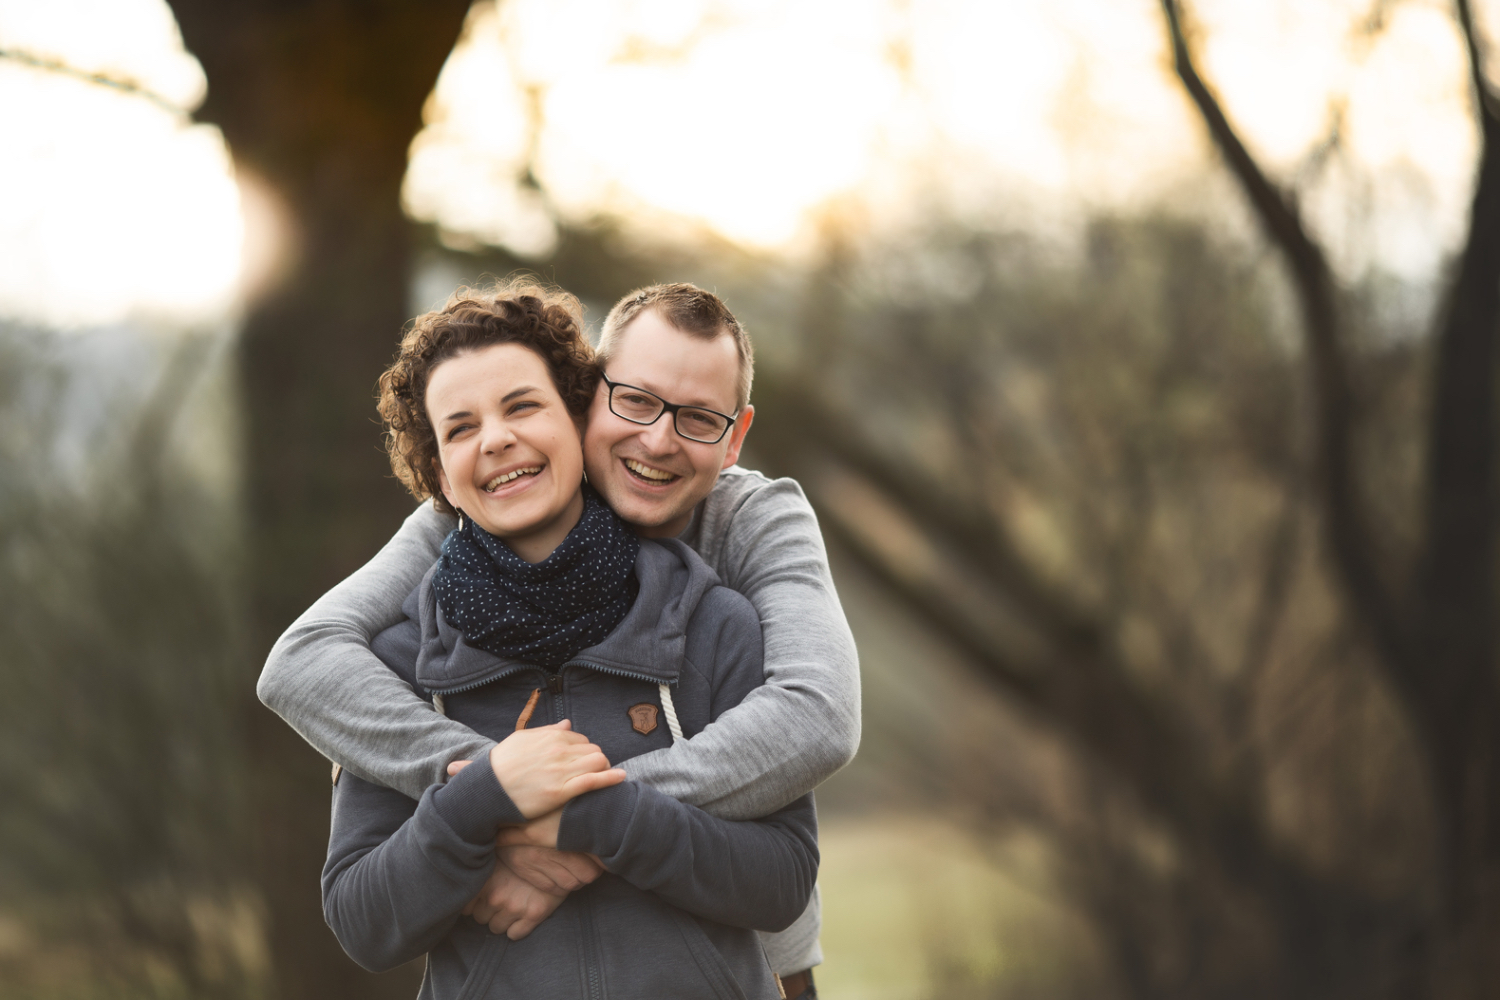 Familienshooting, Family Shooting, Eltern, Emmenbrücke Littau